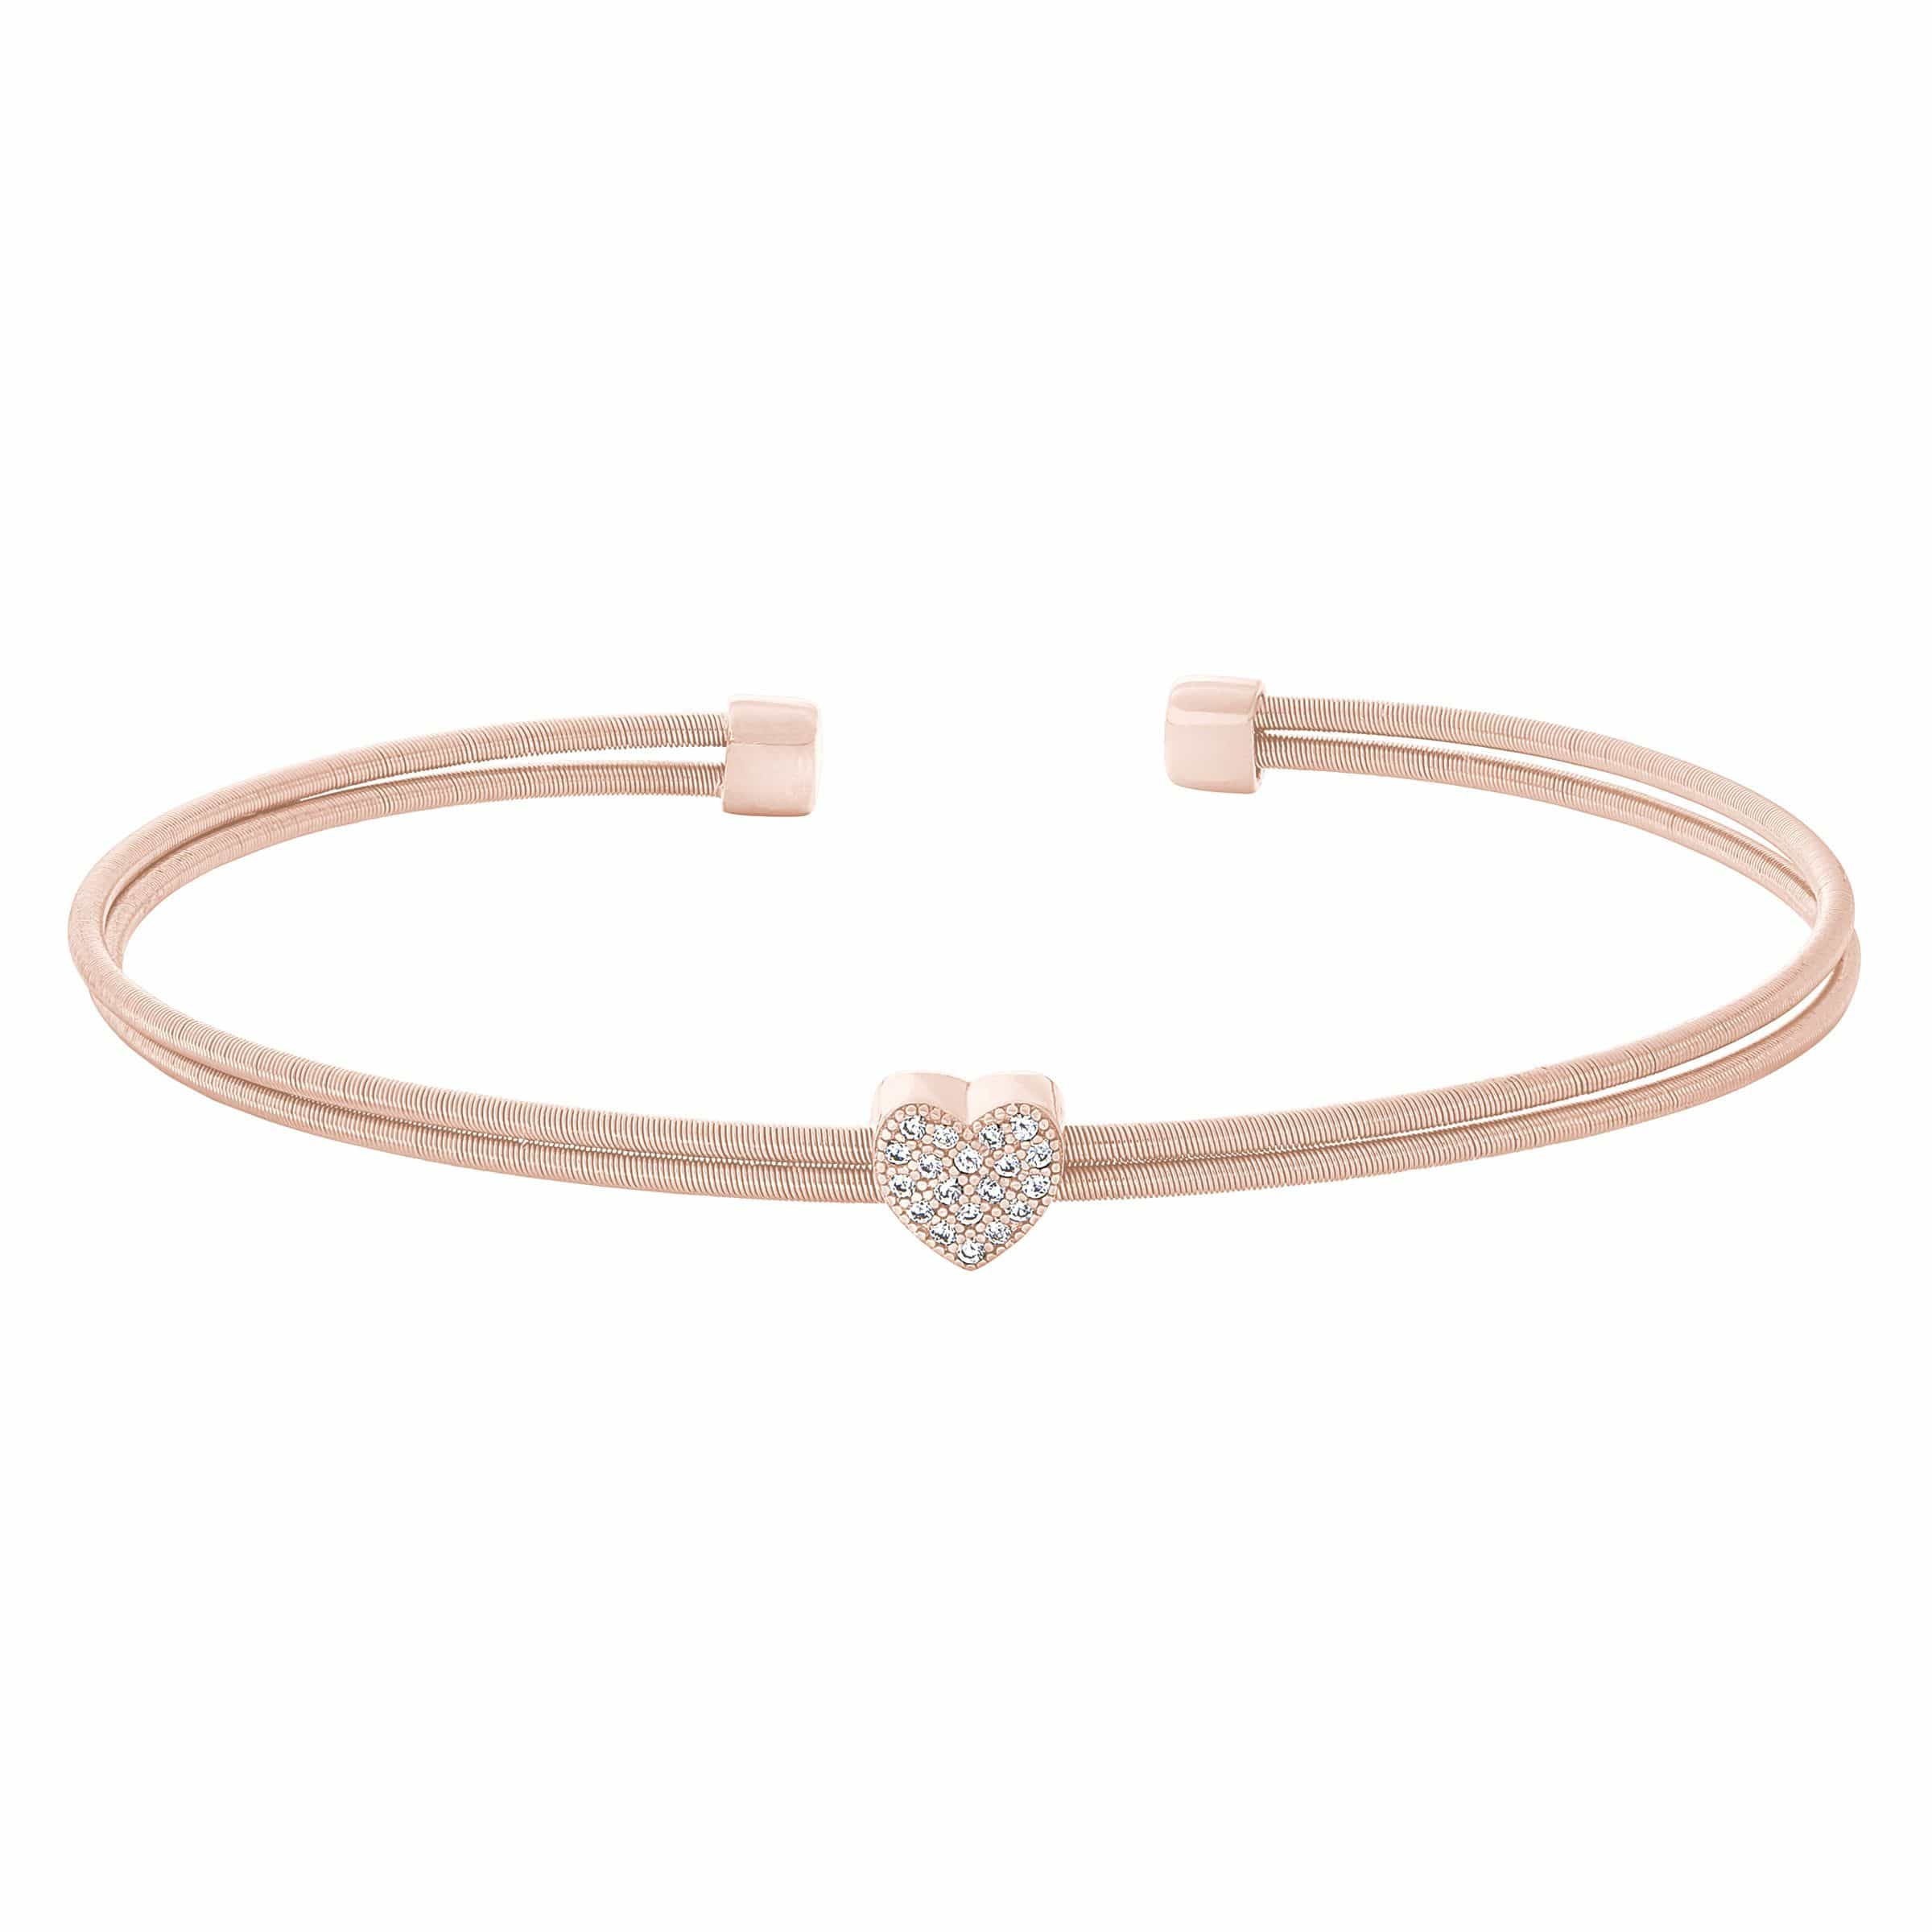 Rose Gold Finish Sterling Silver Two Cable Cuff Bracelet - LL7061B-RG-Kelly Waters-Renee Taylor Gallery